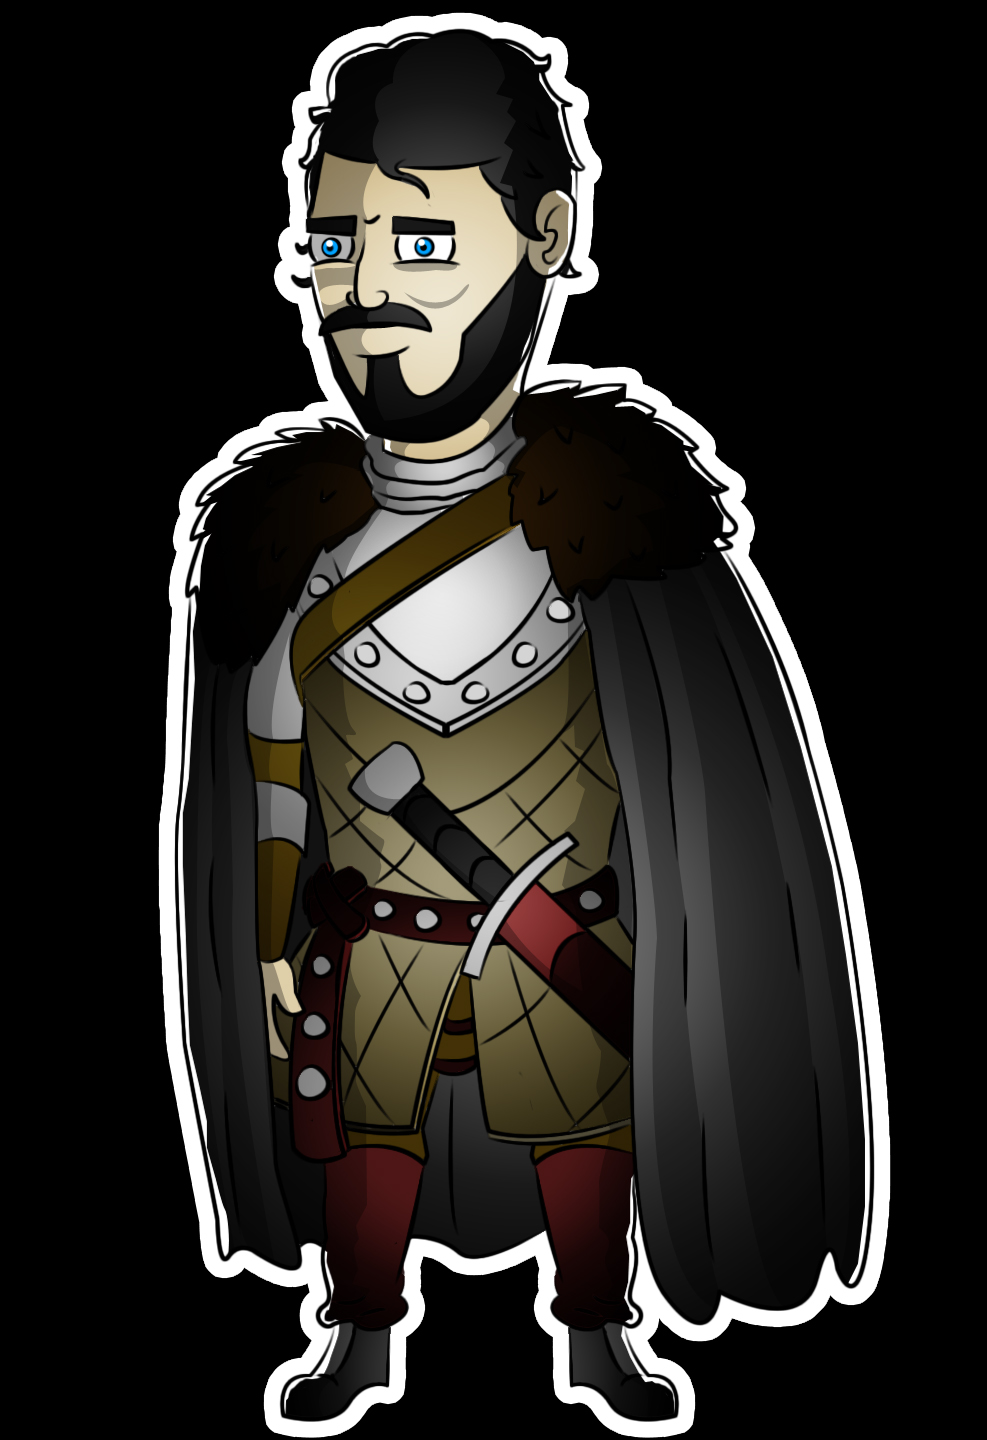 Rob stark (The king in the North)